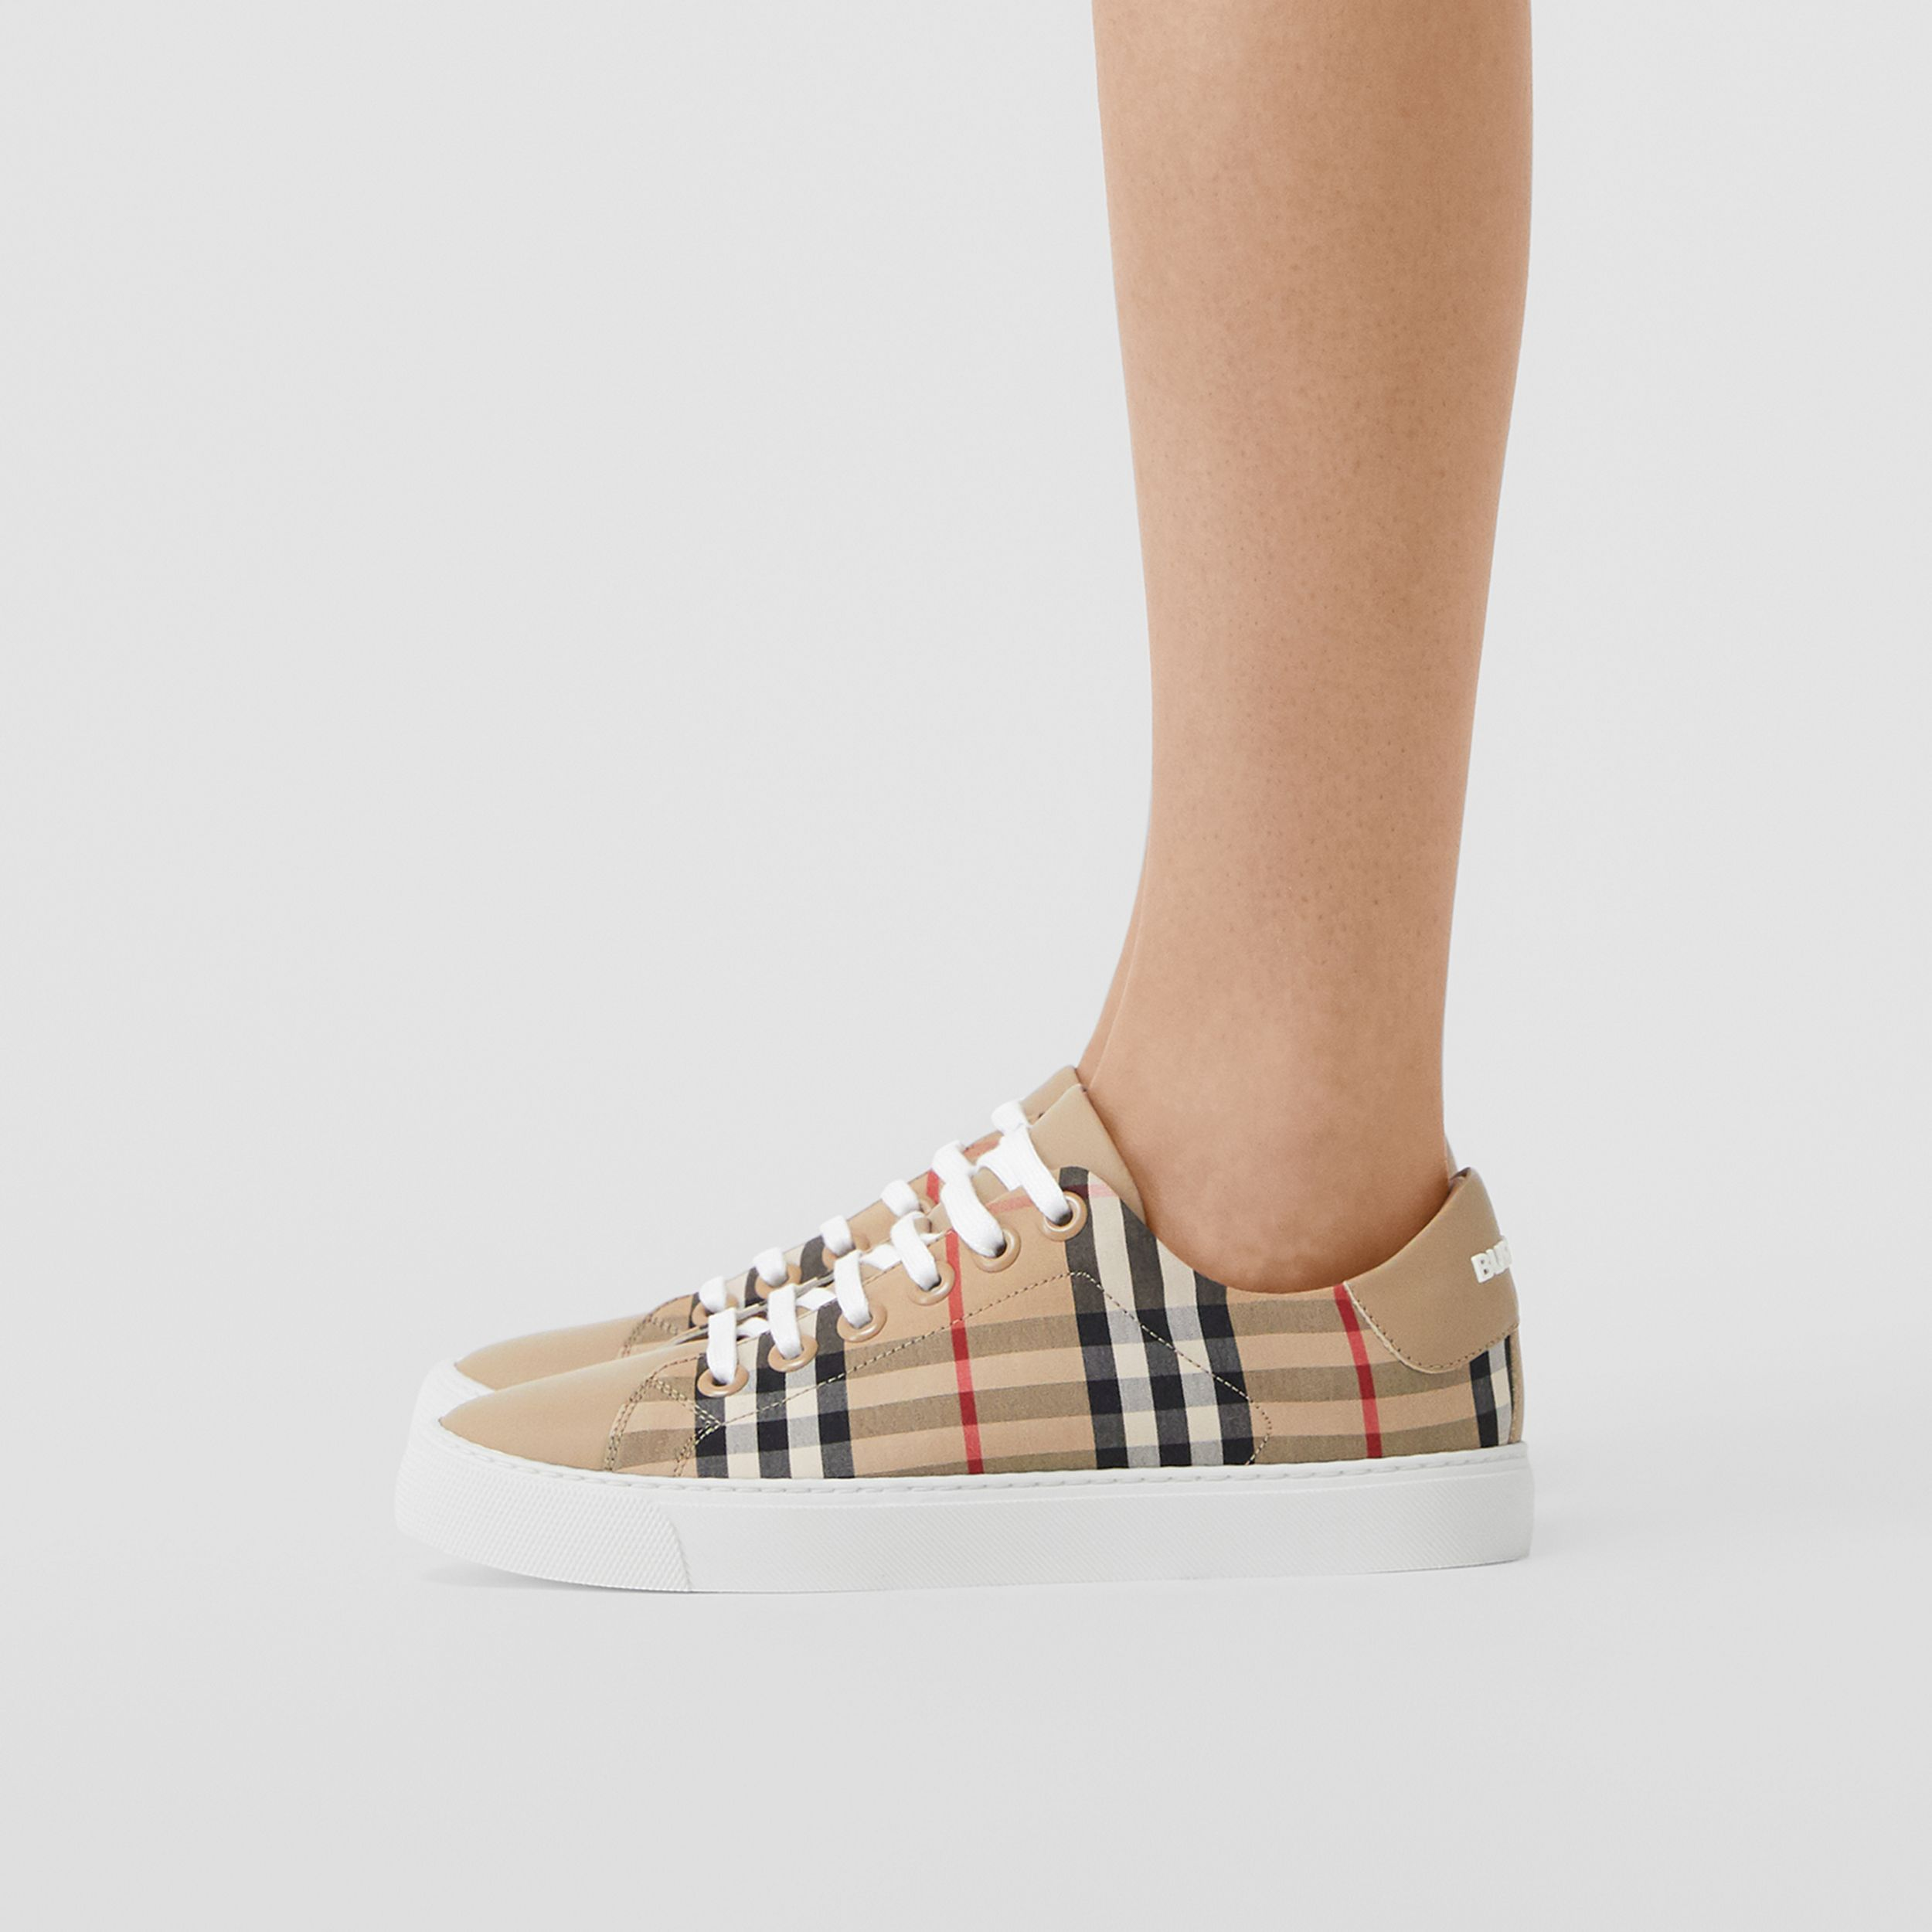 Vintage Check and Leather Sneakers in Archive Beige - Women | Burberry - 3